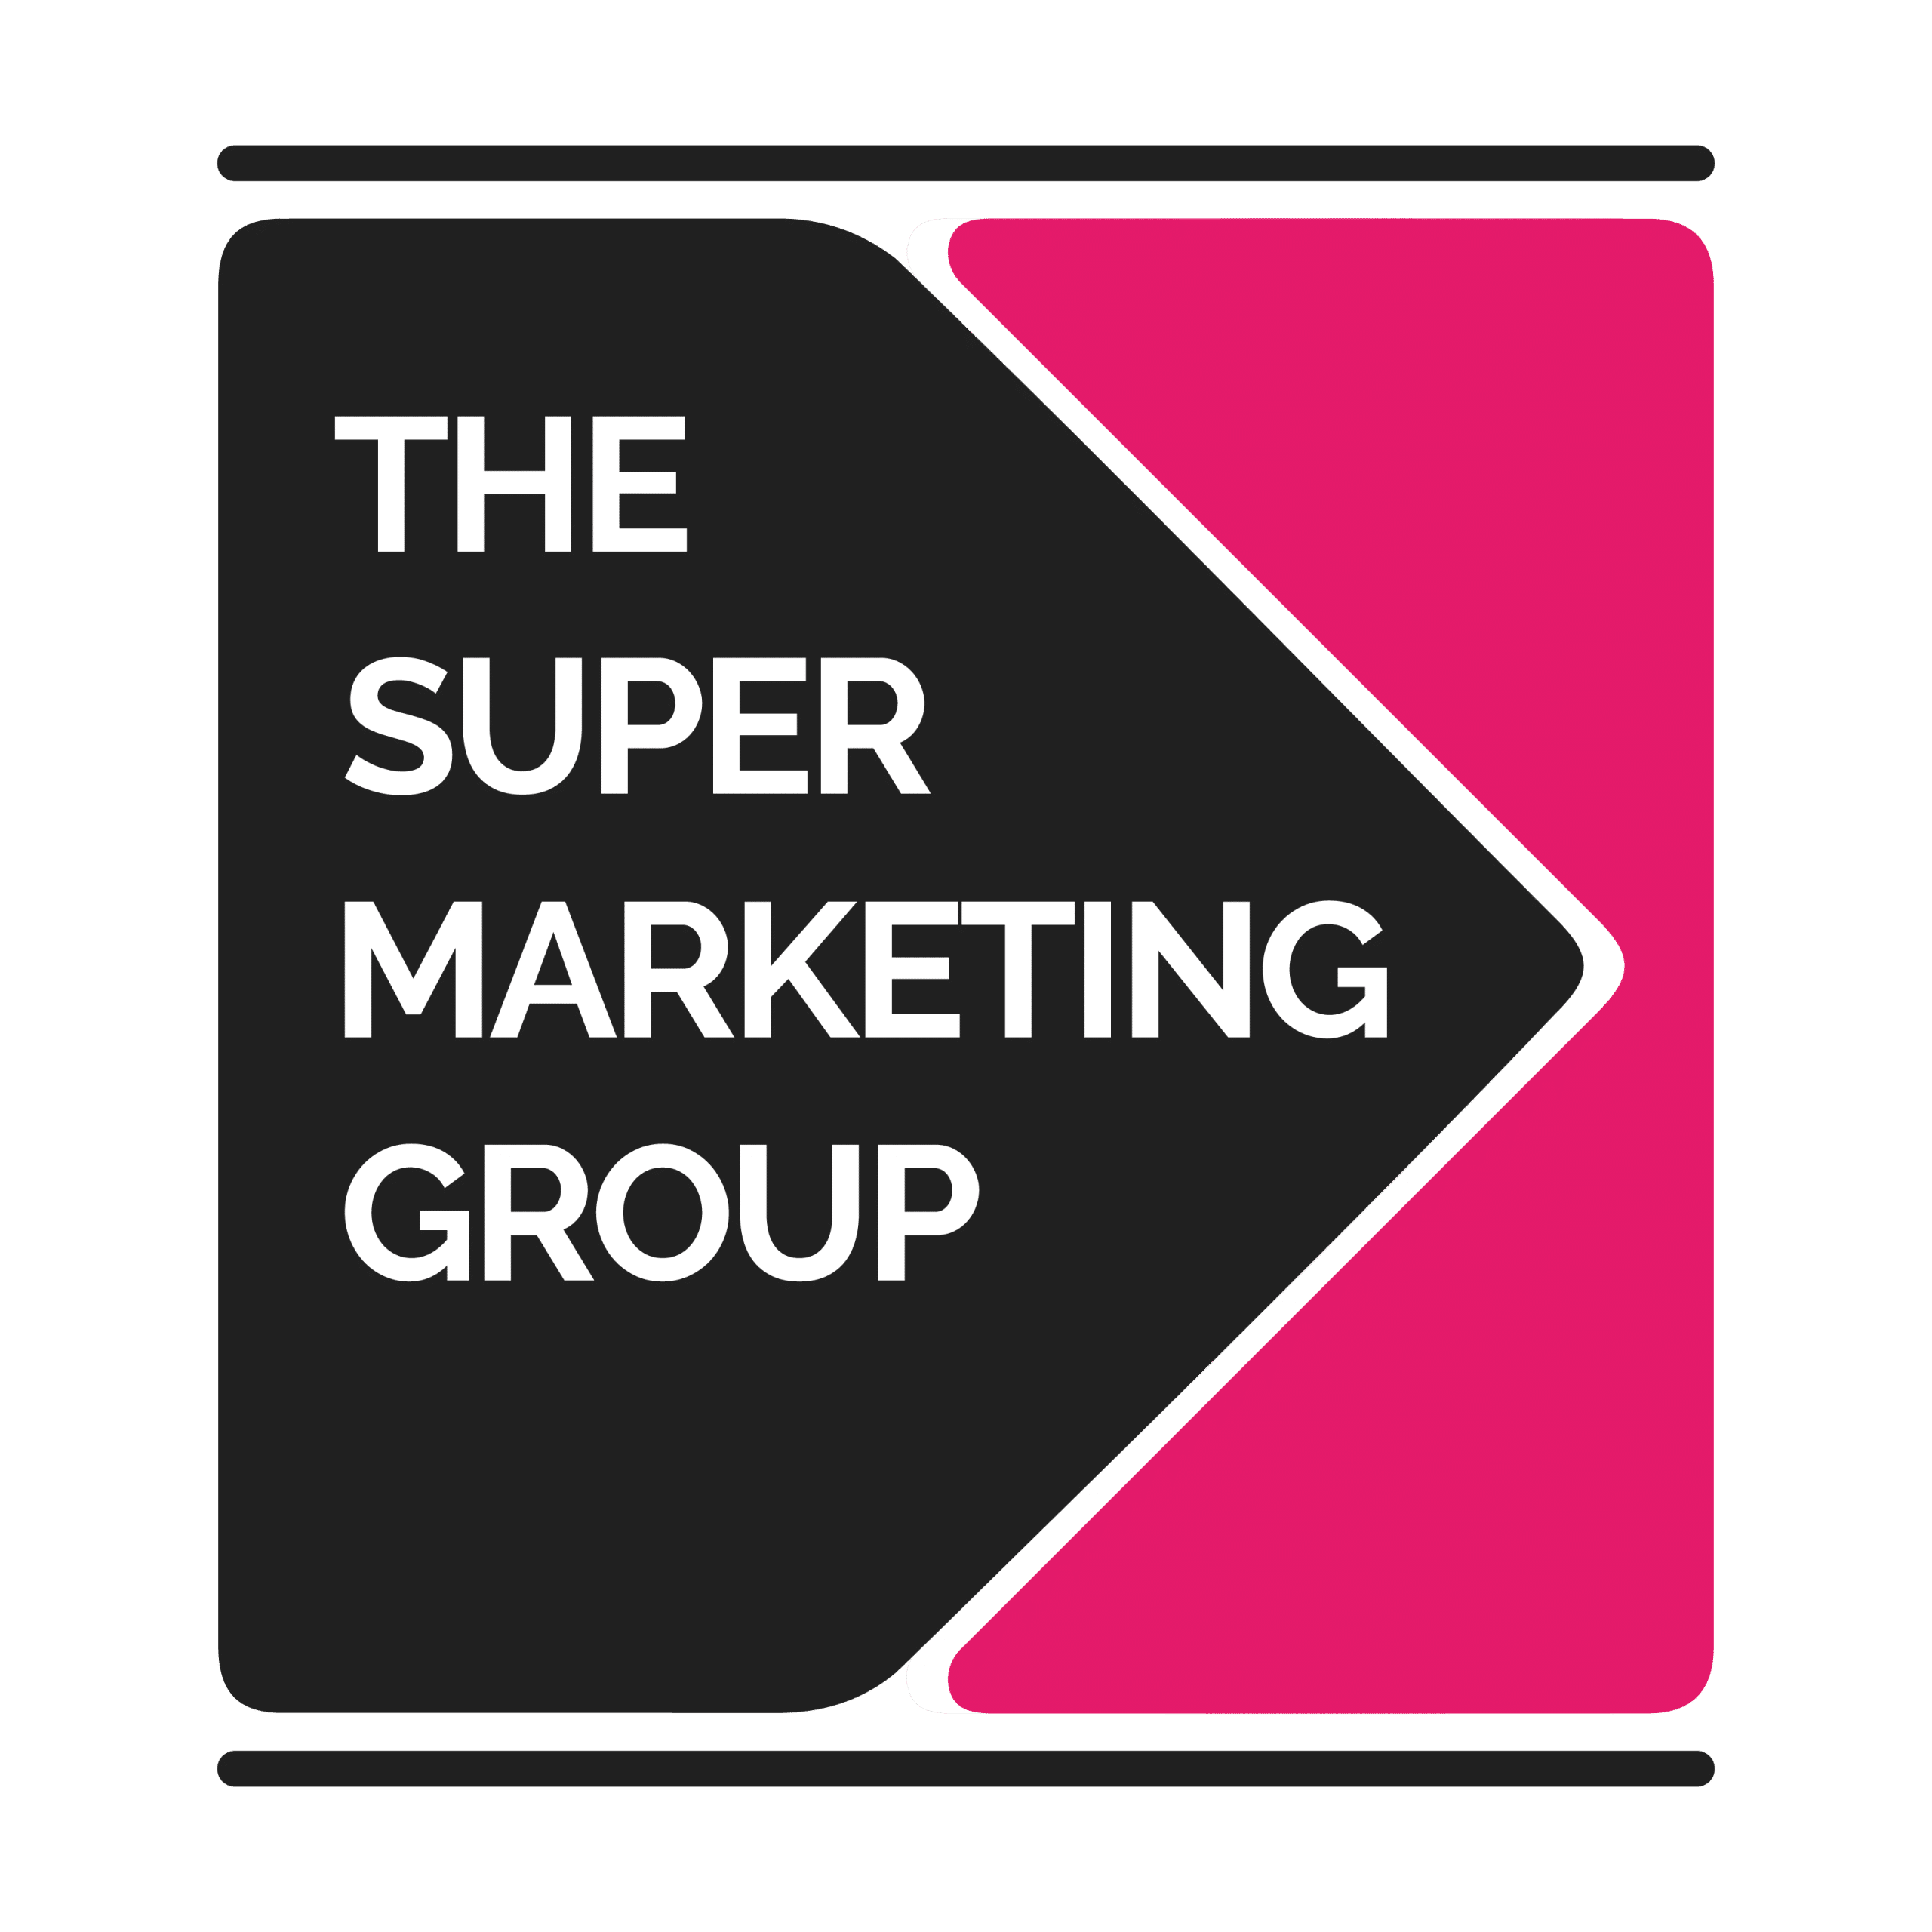 The Super Marketing Group